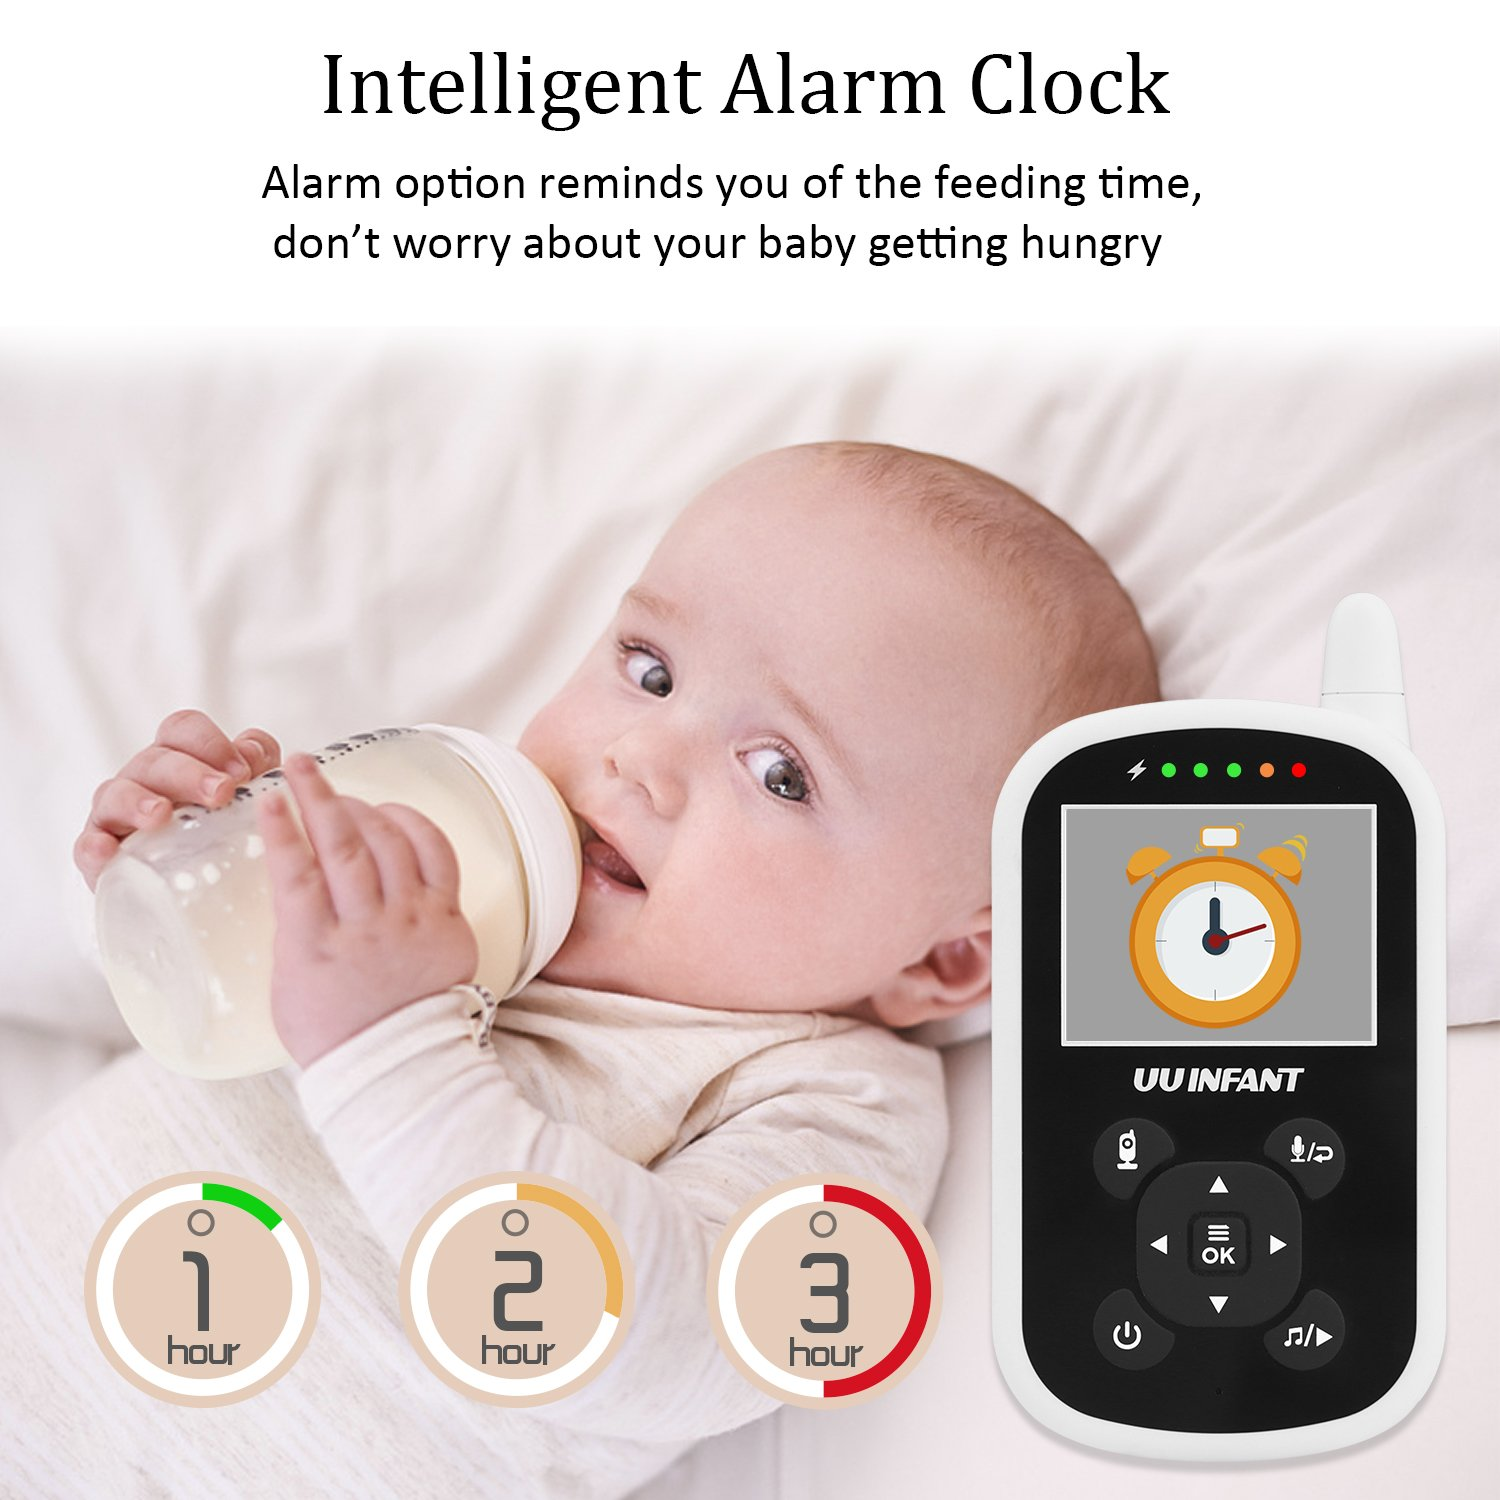 Baby Monitor, Video Baby Monitor with Camera- Wireless Video Monitor for Baby Safety- with Infrared Night Vision/Two Way Talkback/Temperature Monitor/Lullaby-Play (White) by UU Infant (Image #8)